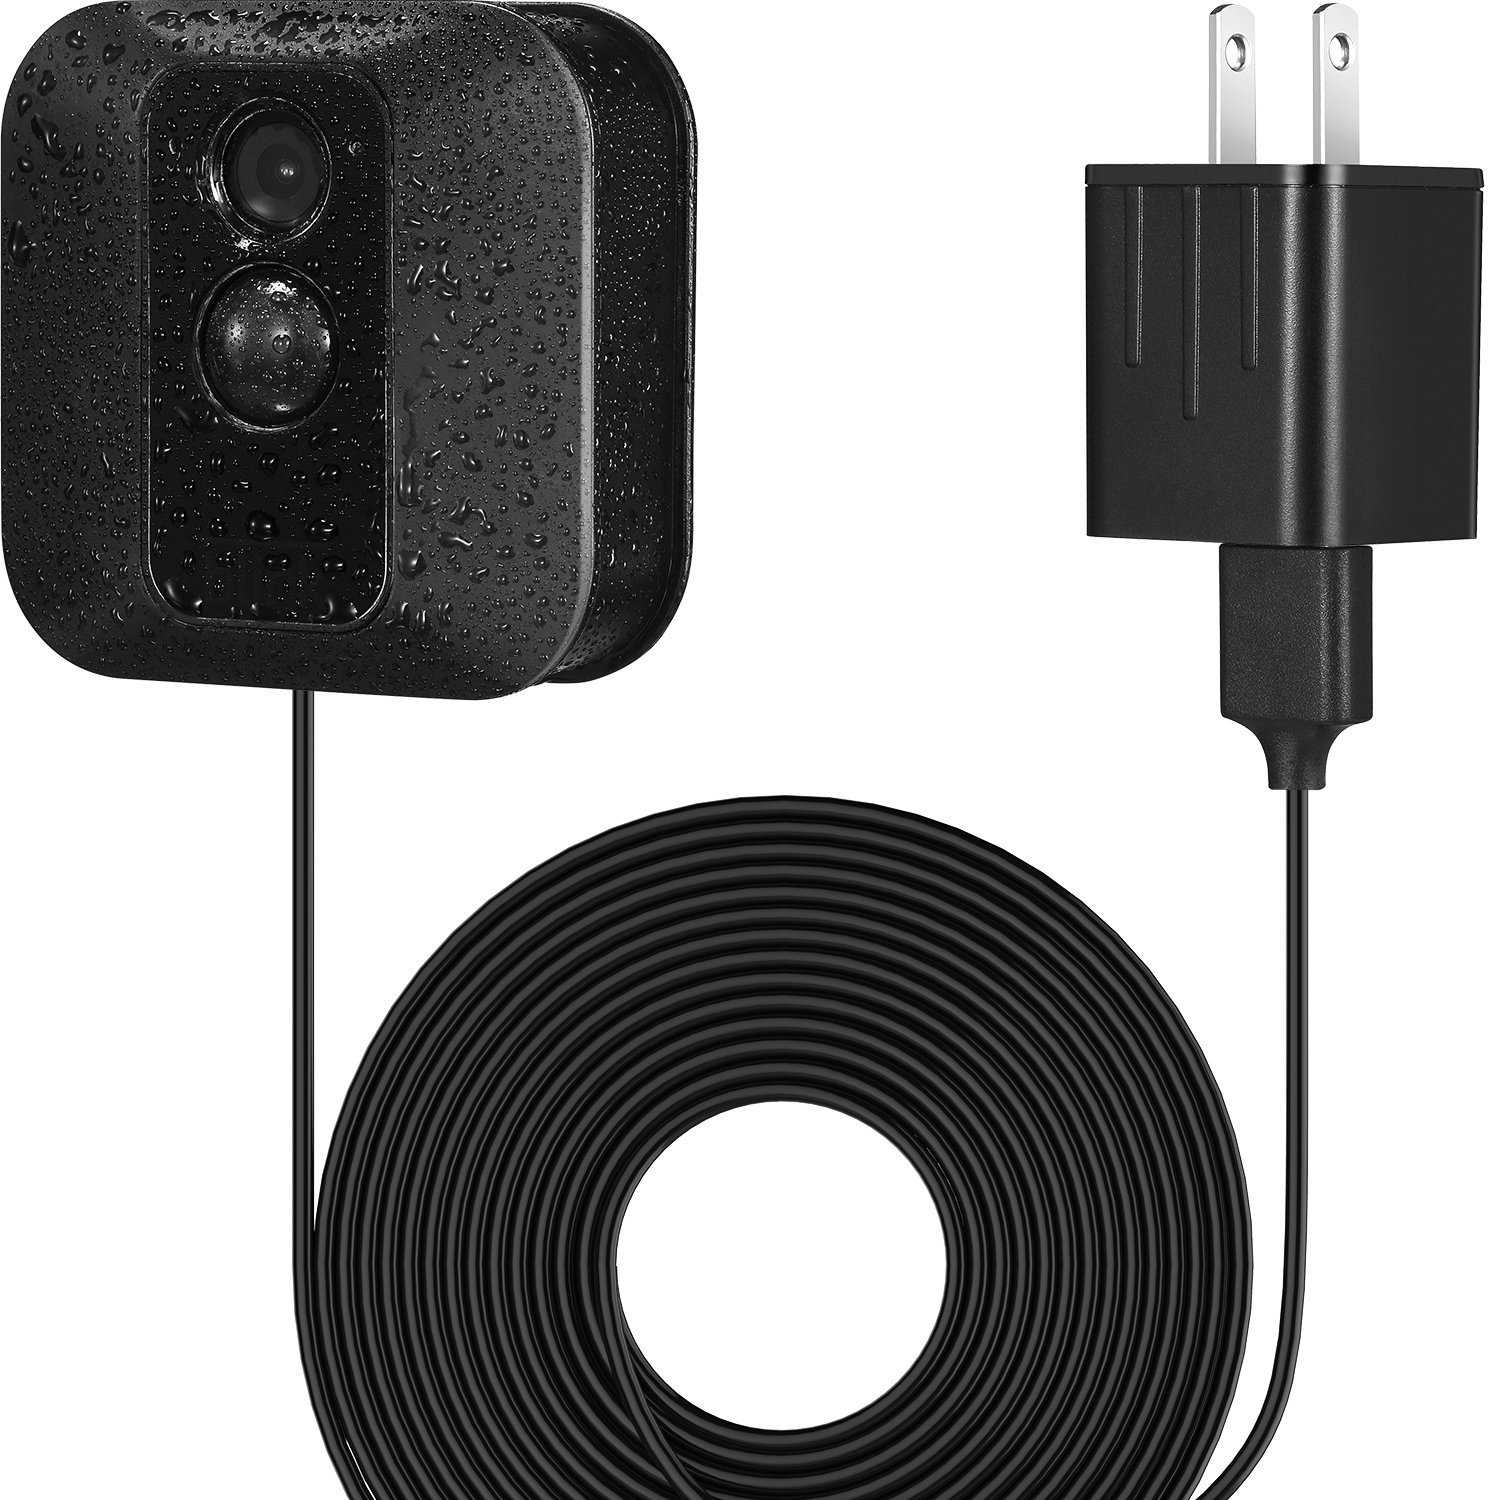 BBTO Power Adapter with 20 ft/6 m Weatherproof Cable for Blink XT Security Camera, Continuously Operate Blink XT Camera, No Need to Change the Batteries (Black)